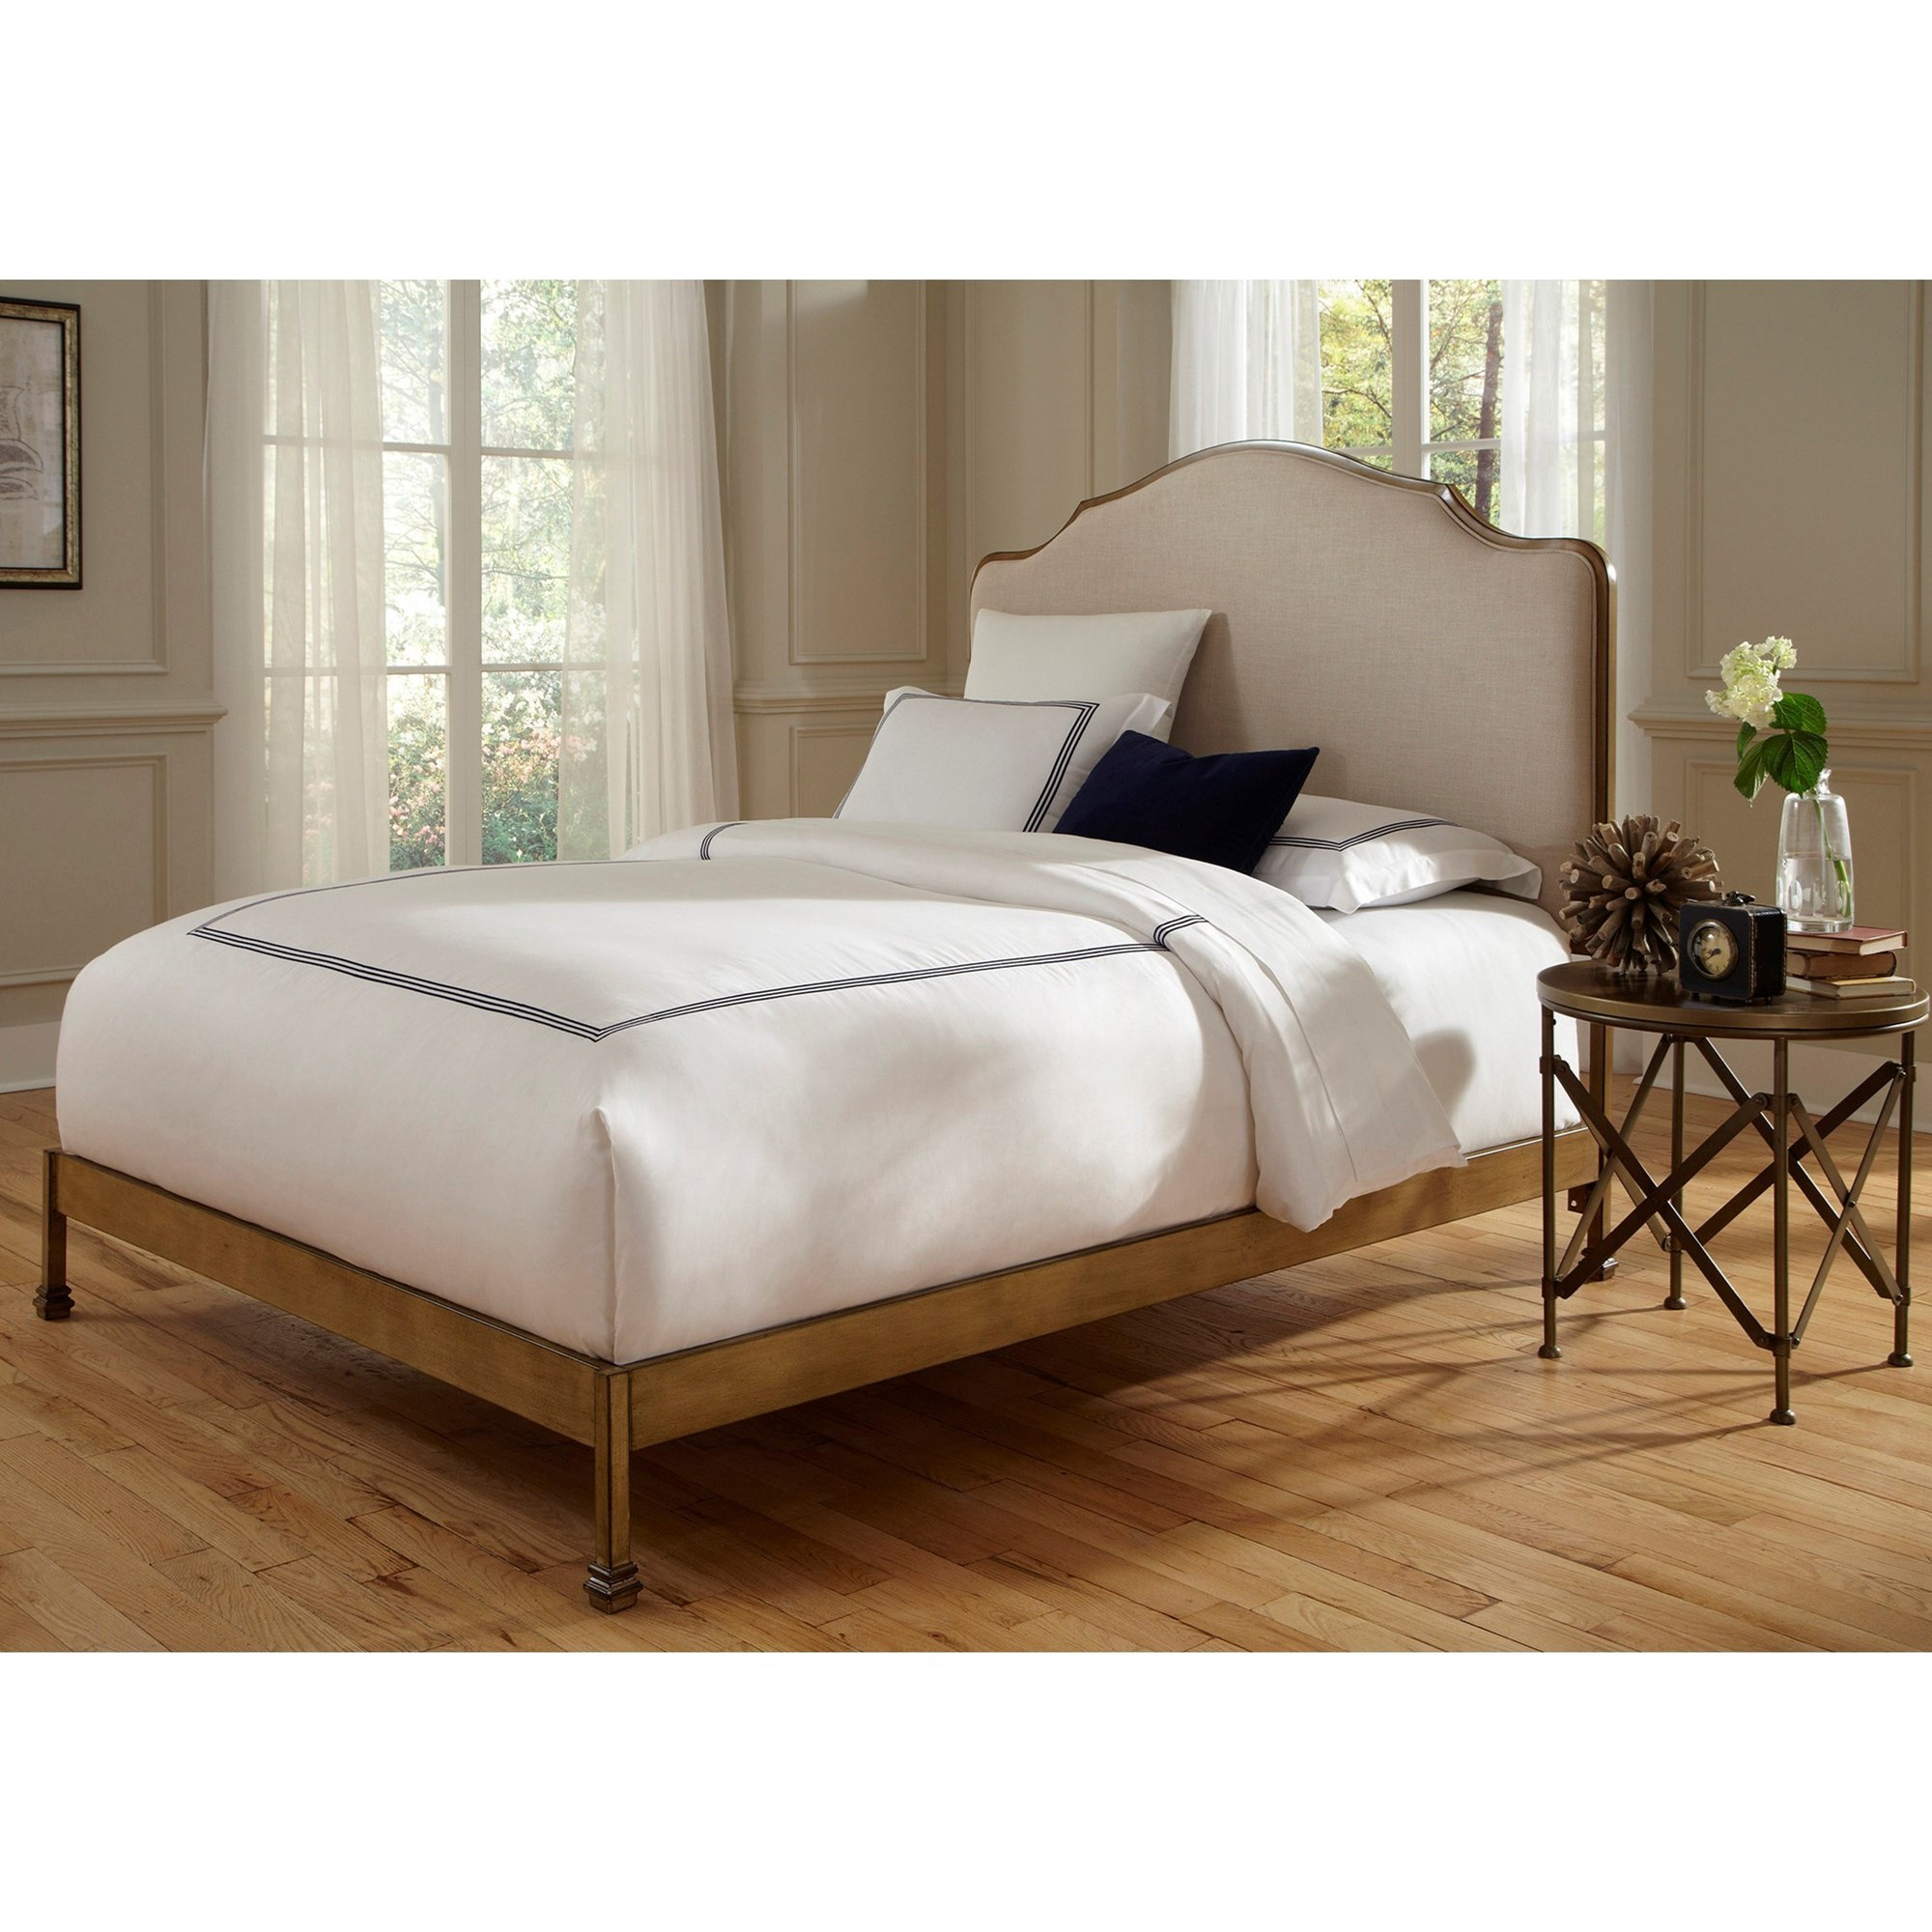 Calvados Queen Bed With Metal Headboard And Sand Colored .